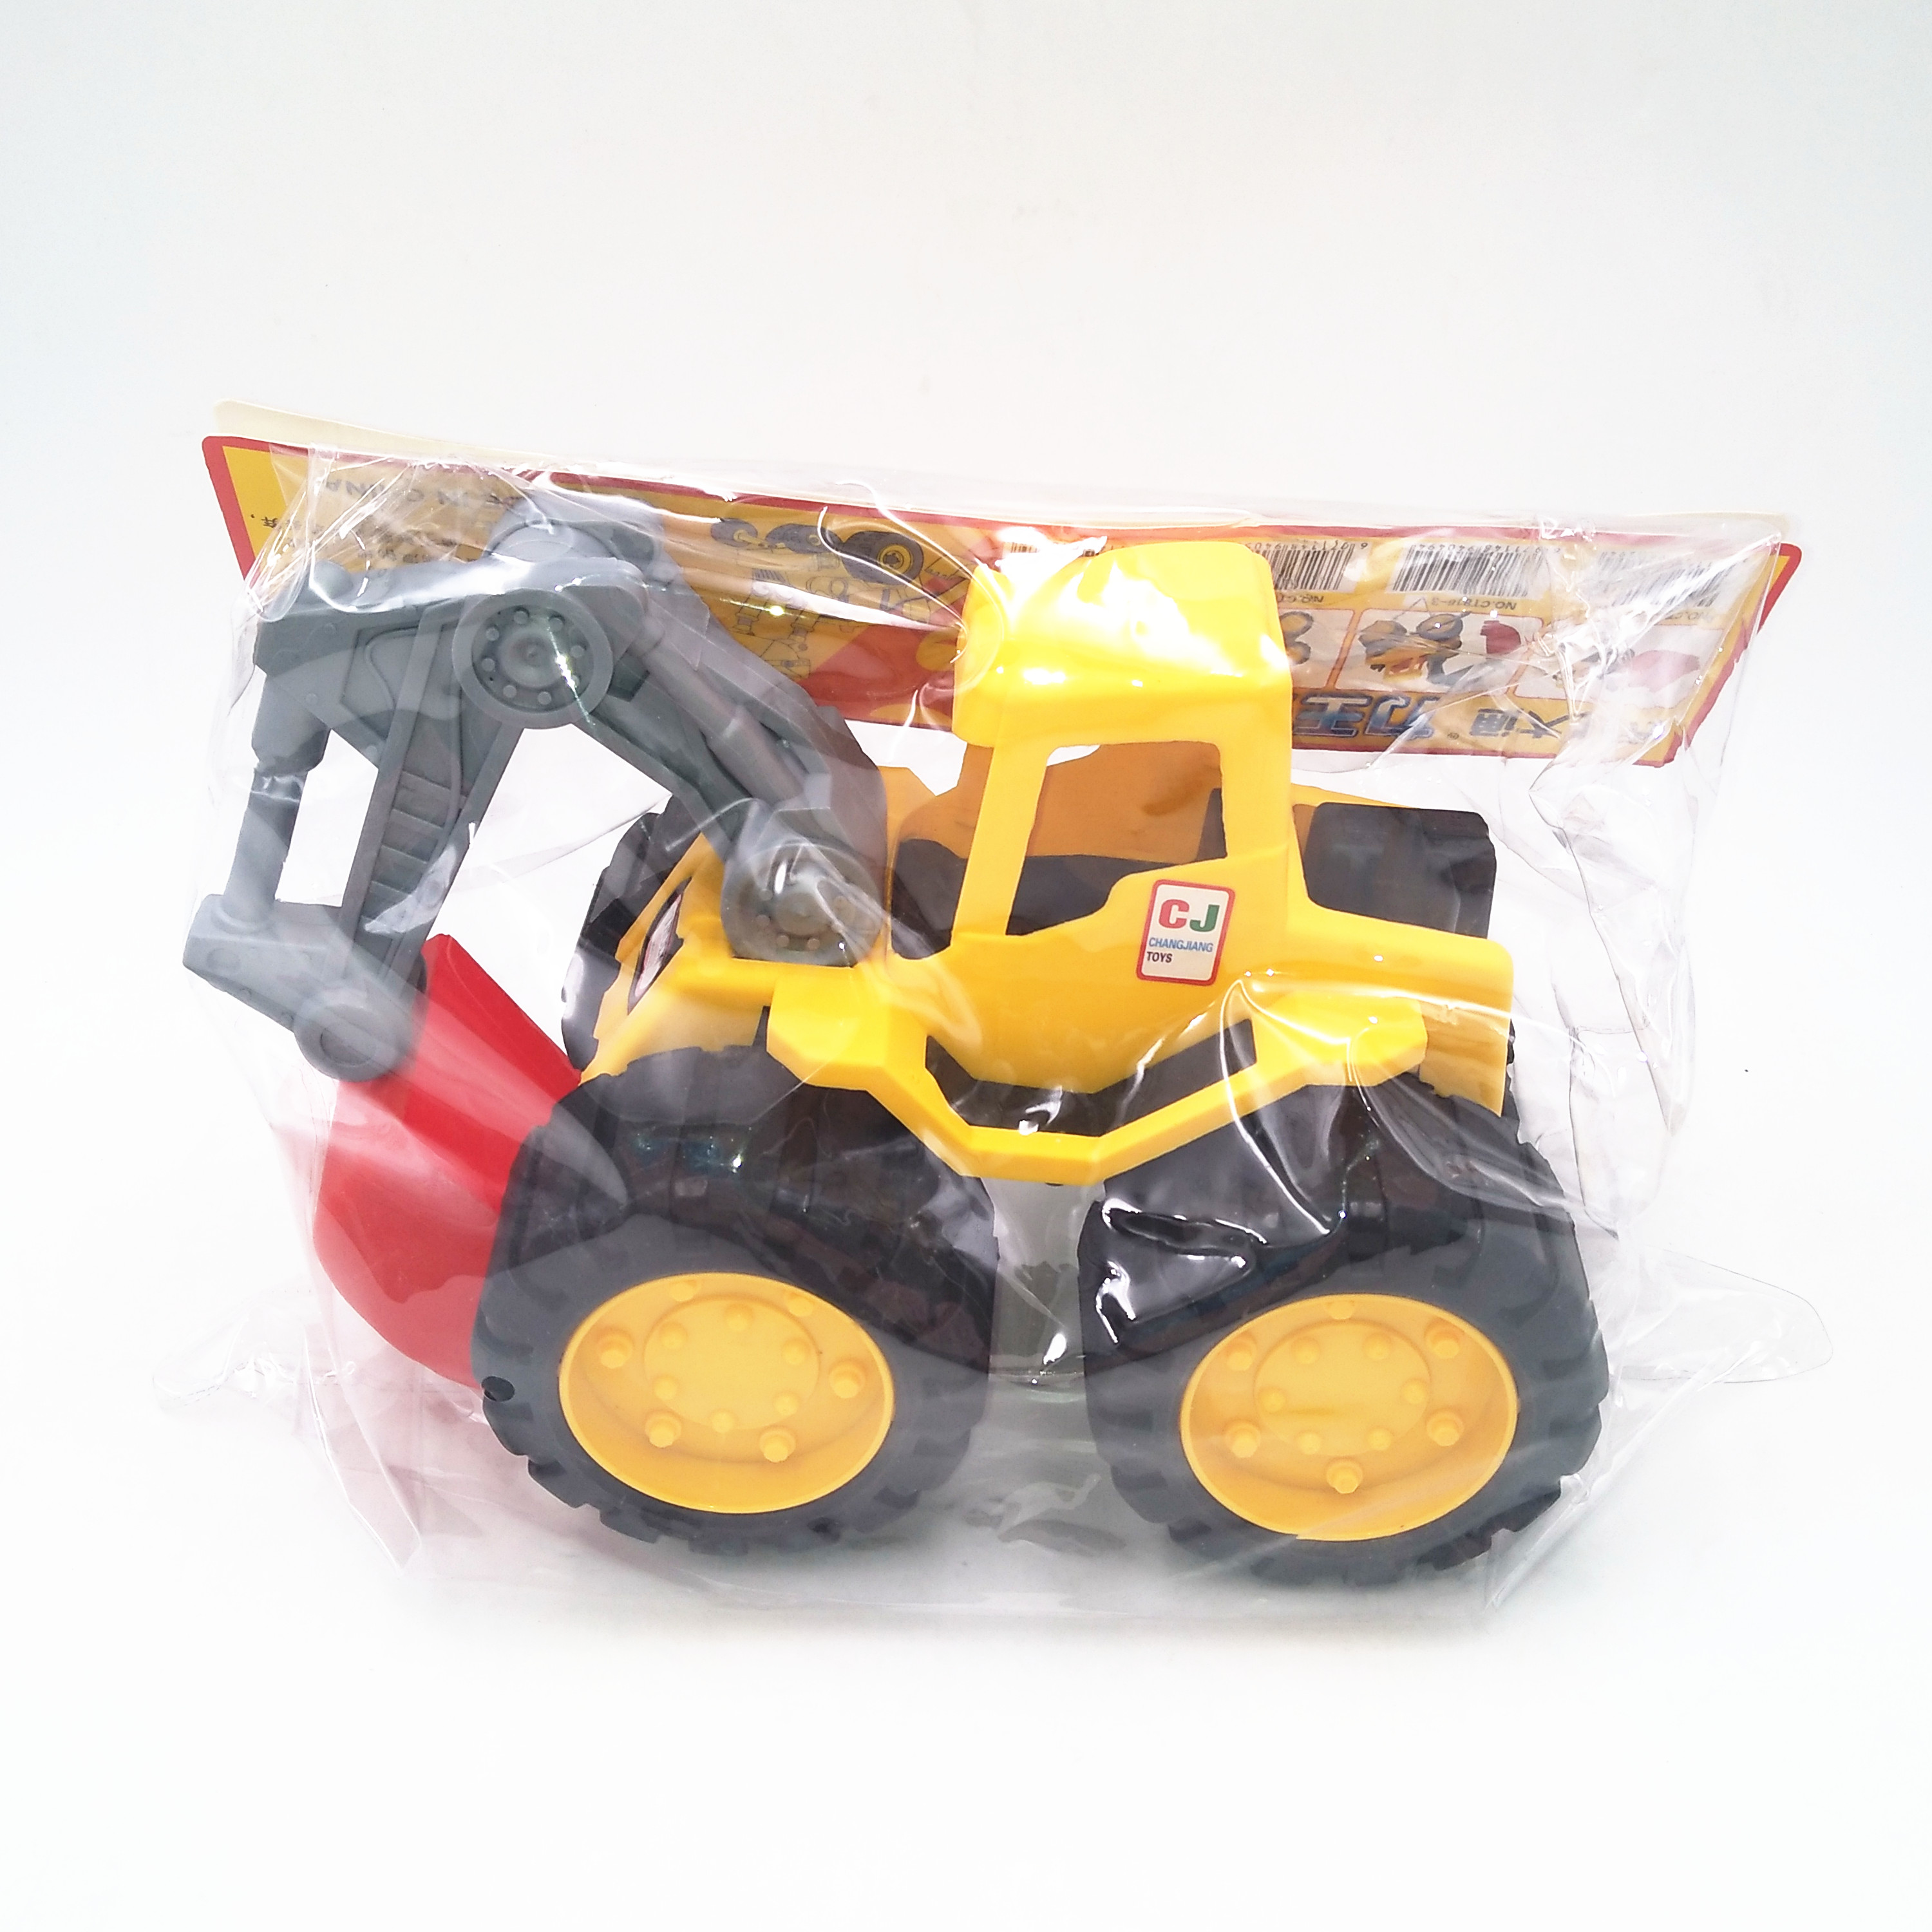 FREE WHEEL TRUCK TOY LY1829